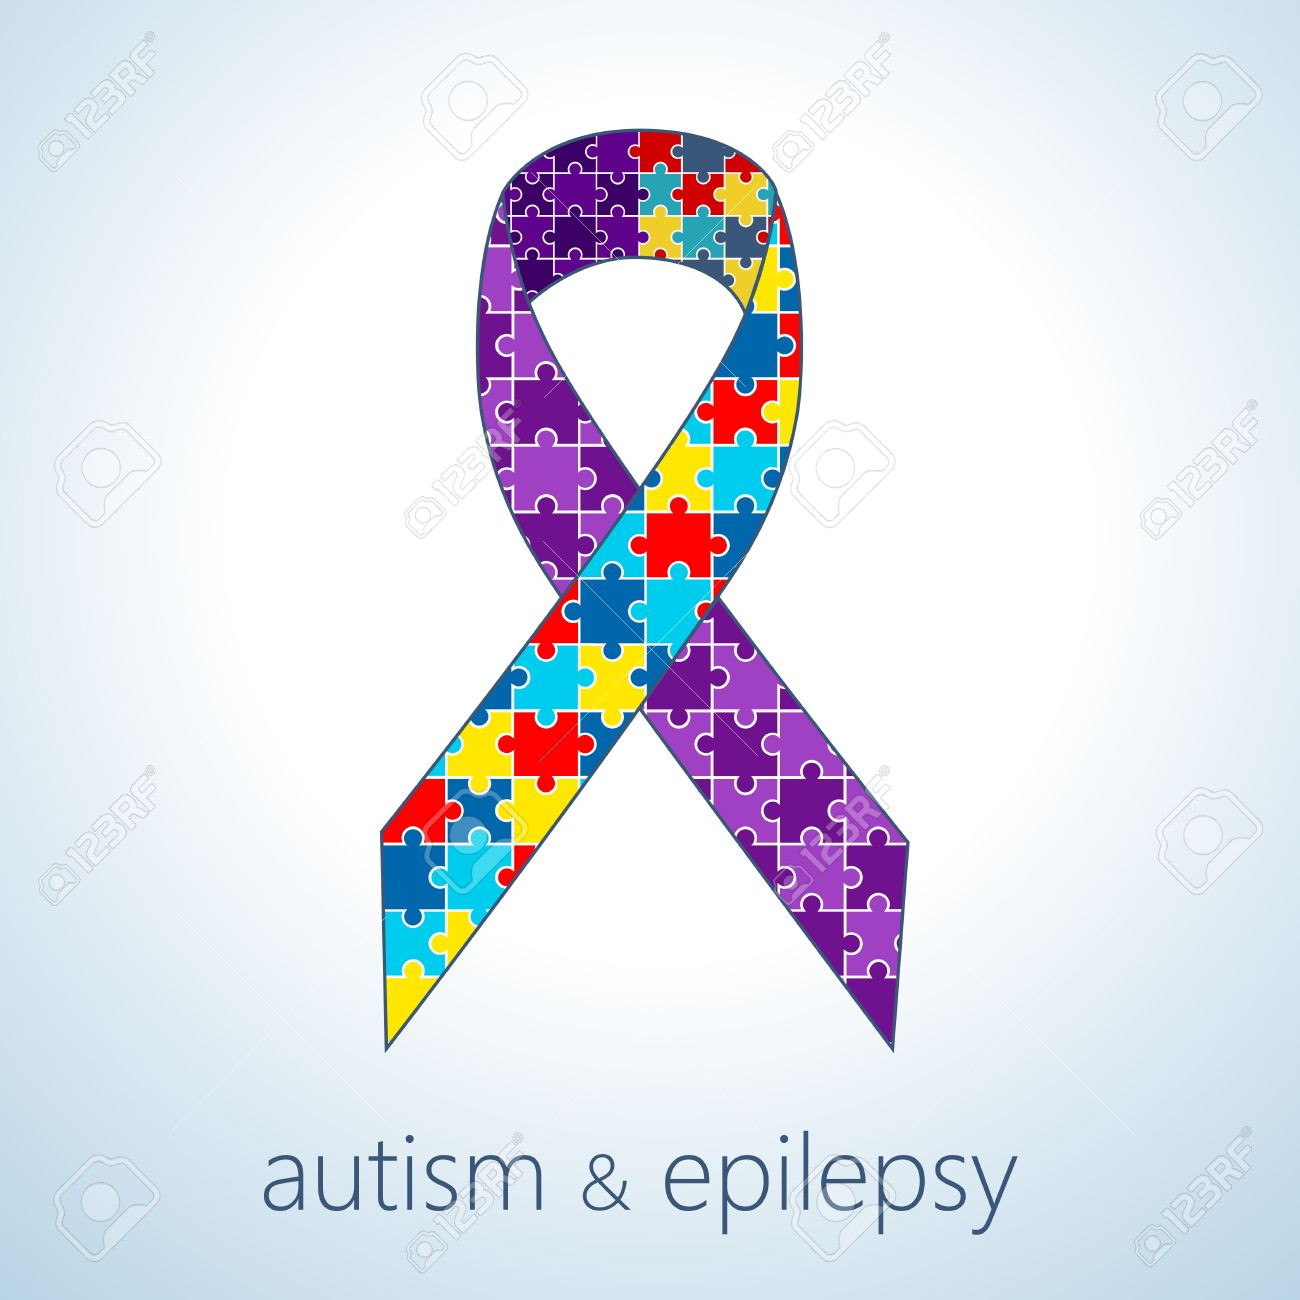 Vector Illustration Of Autism And Epilepsy Connection Concept ...